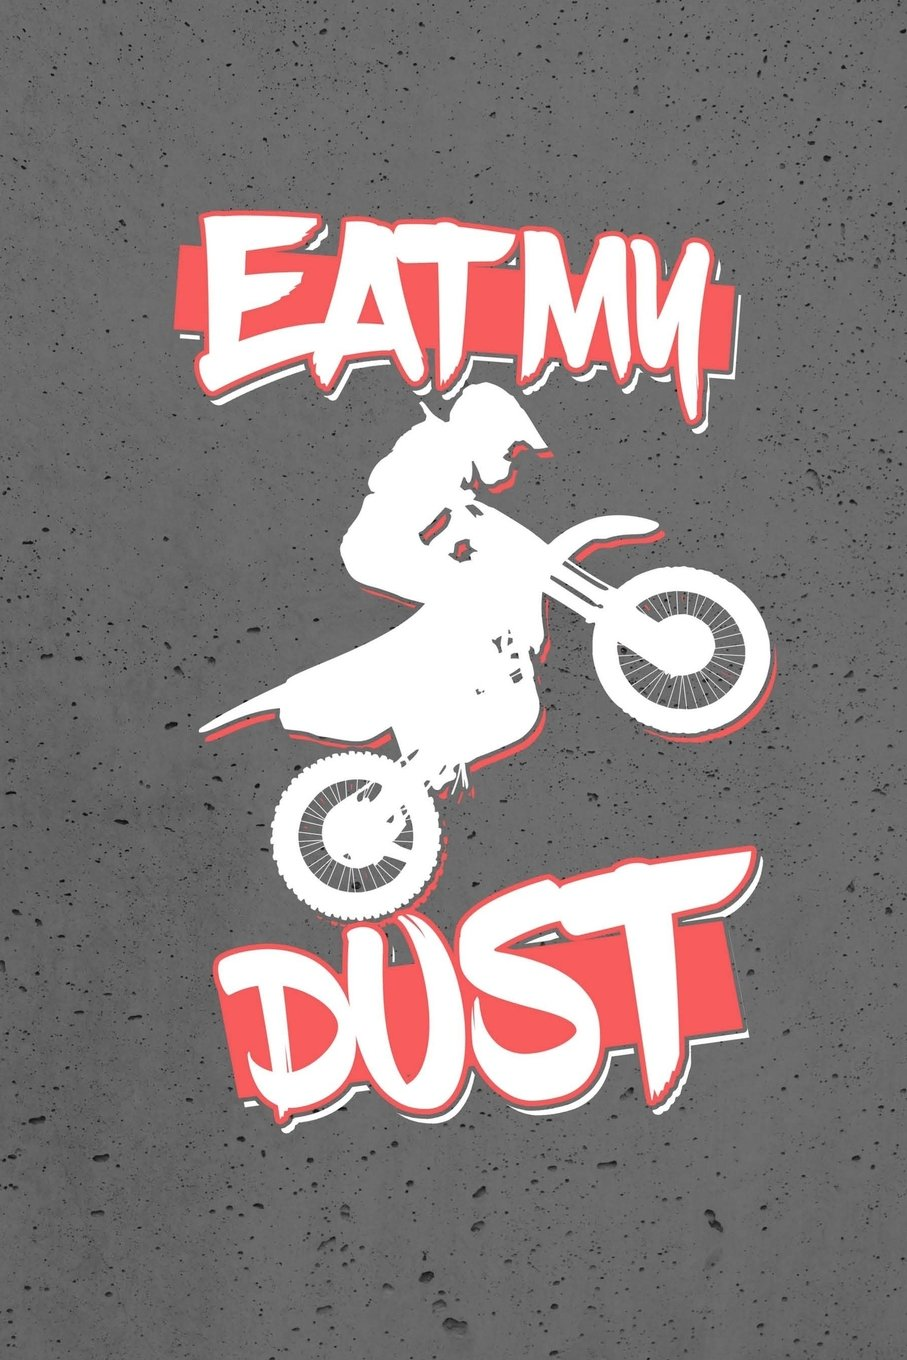 """Read Online Eat My Dust: Dirt Bike Riding, College Ruled Journal Paper, Daily Writing Journaling Lined Paper, 100 Pages (6""""x9"""")  School Teachers Students Gifts pdf epub"""